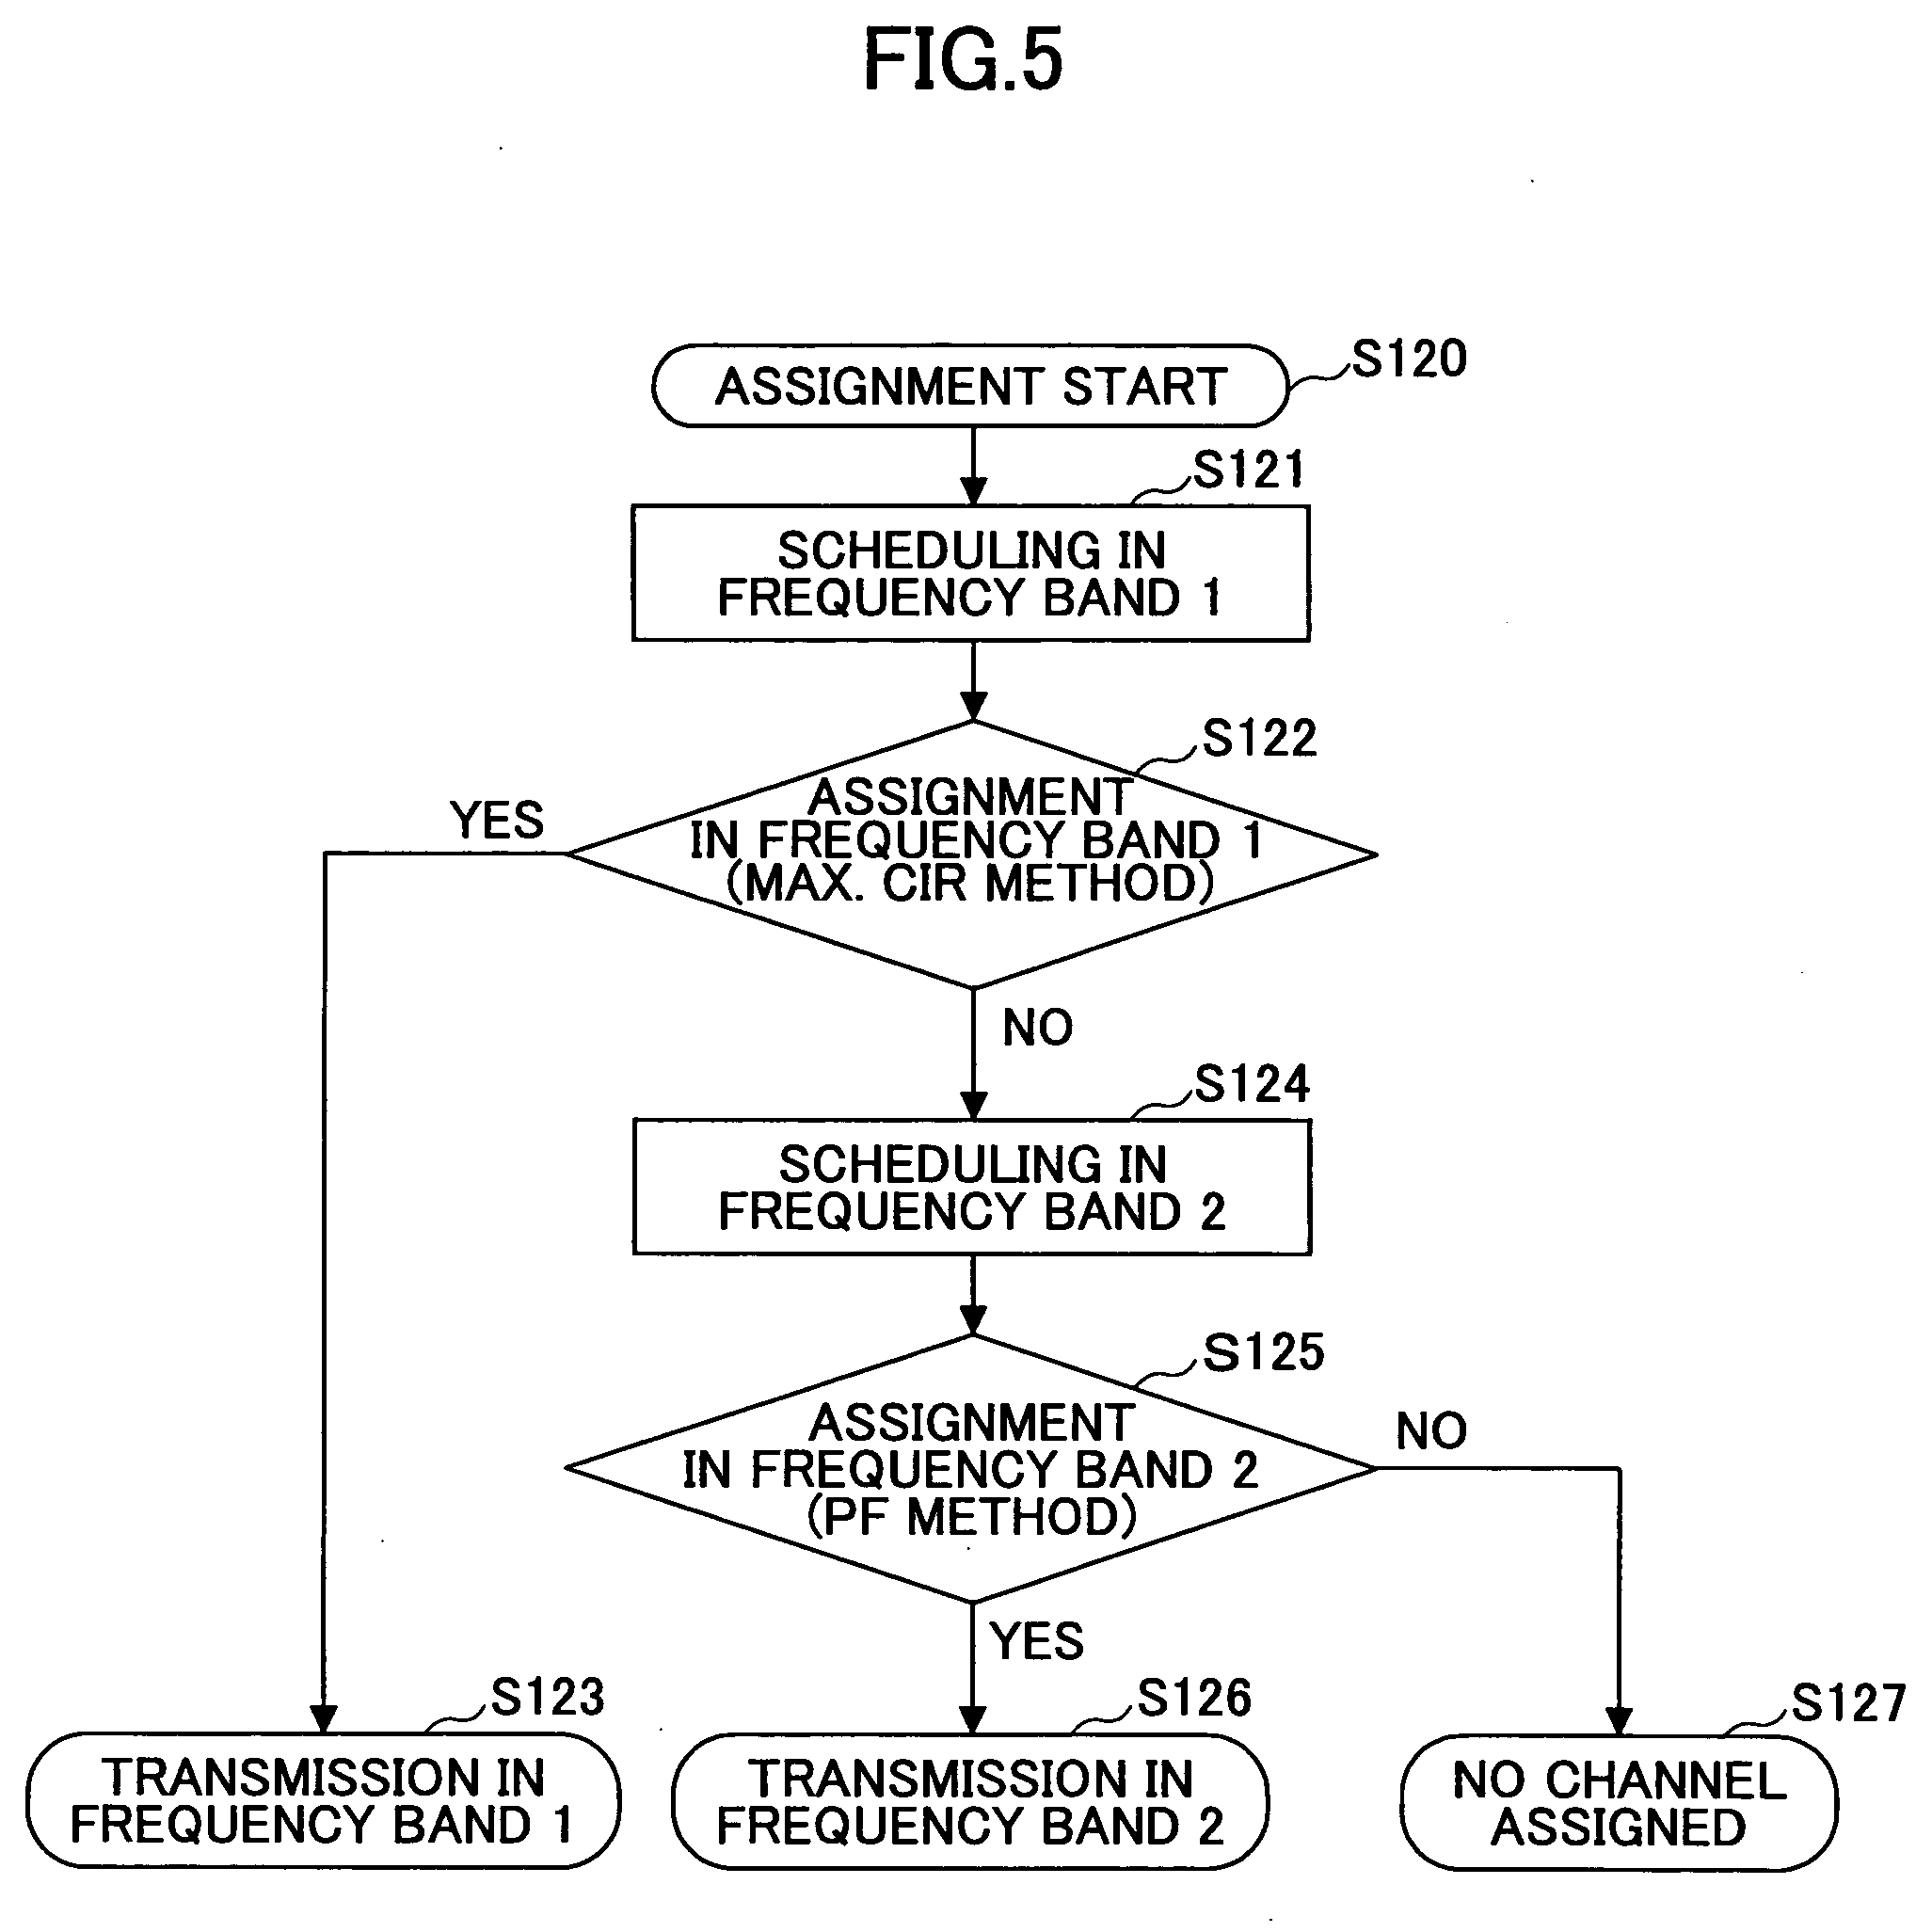 Assigning a patent